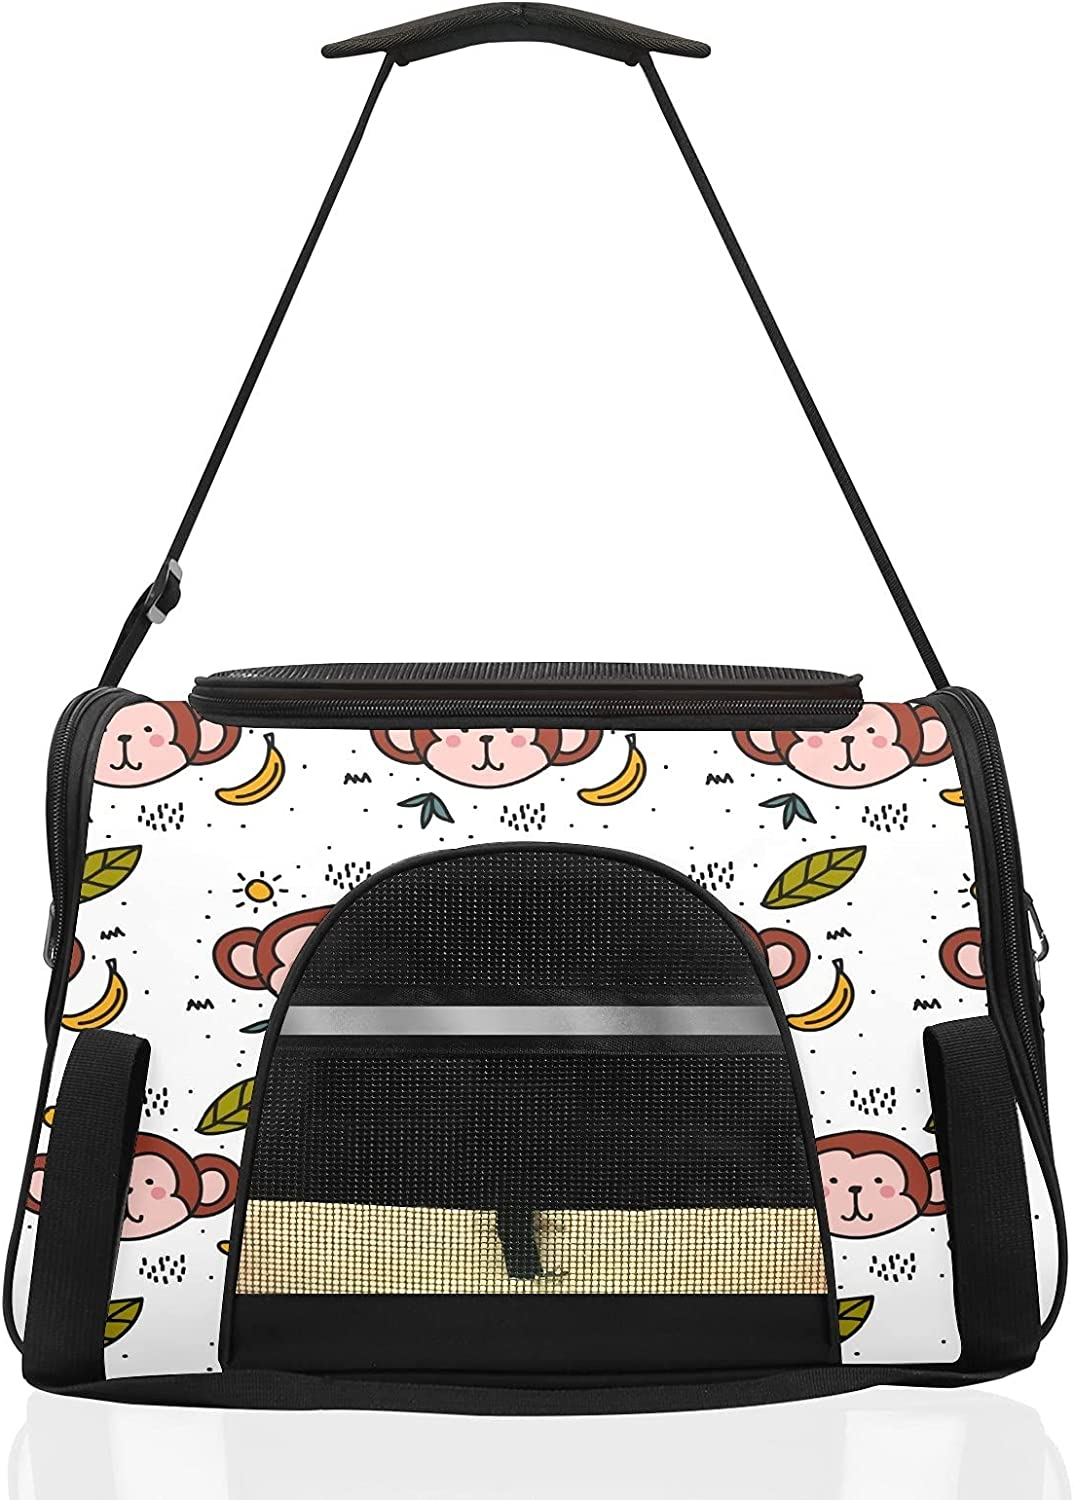 Pet Carriers for Cat Monkey Airline Very popular Trav Soft-Sided Approved Over item handling